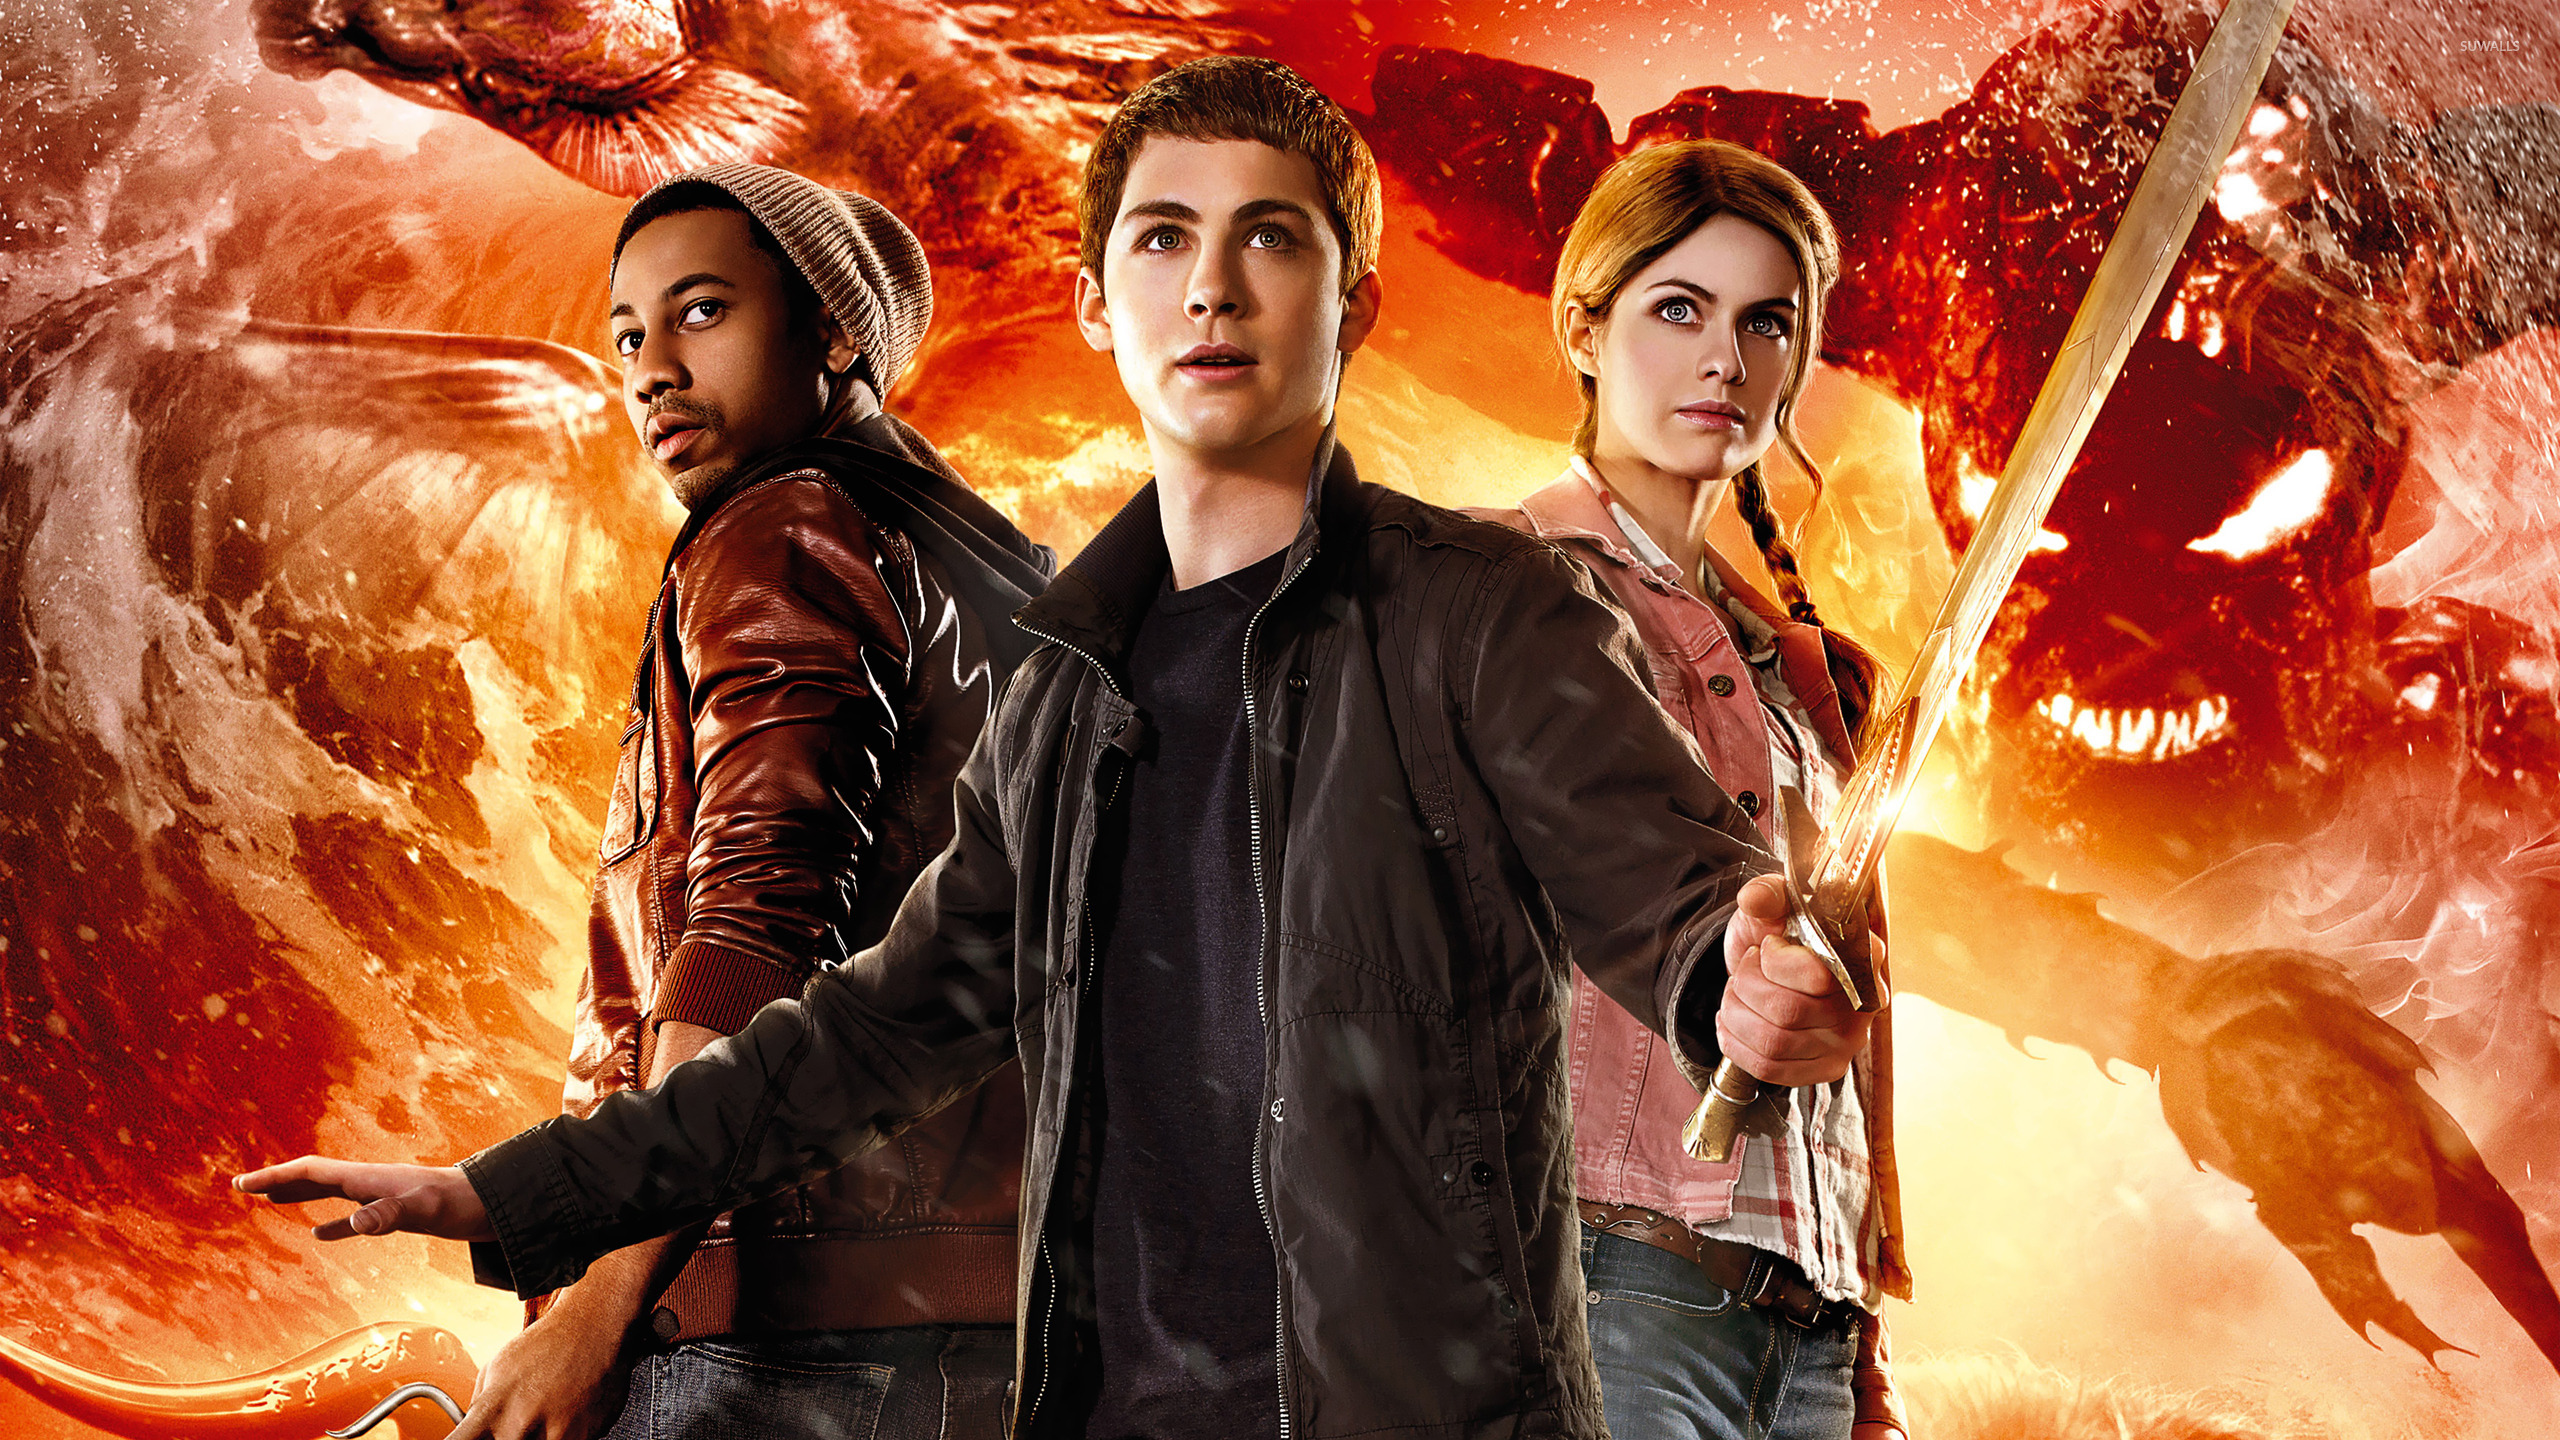 Percy Jackson Wallpaper (92 Wallpapers) - HD Wallpapers